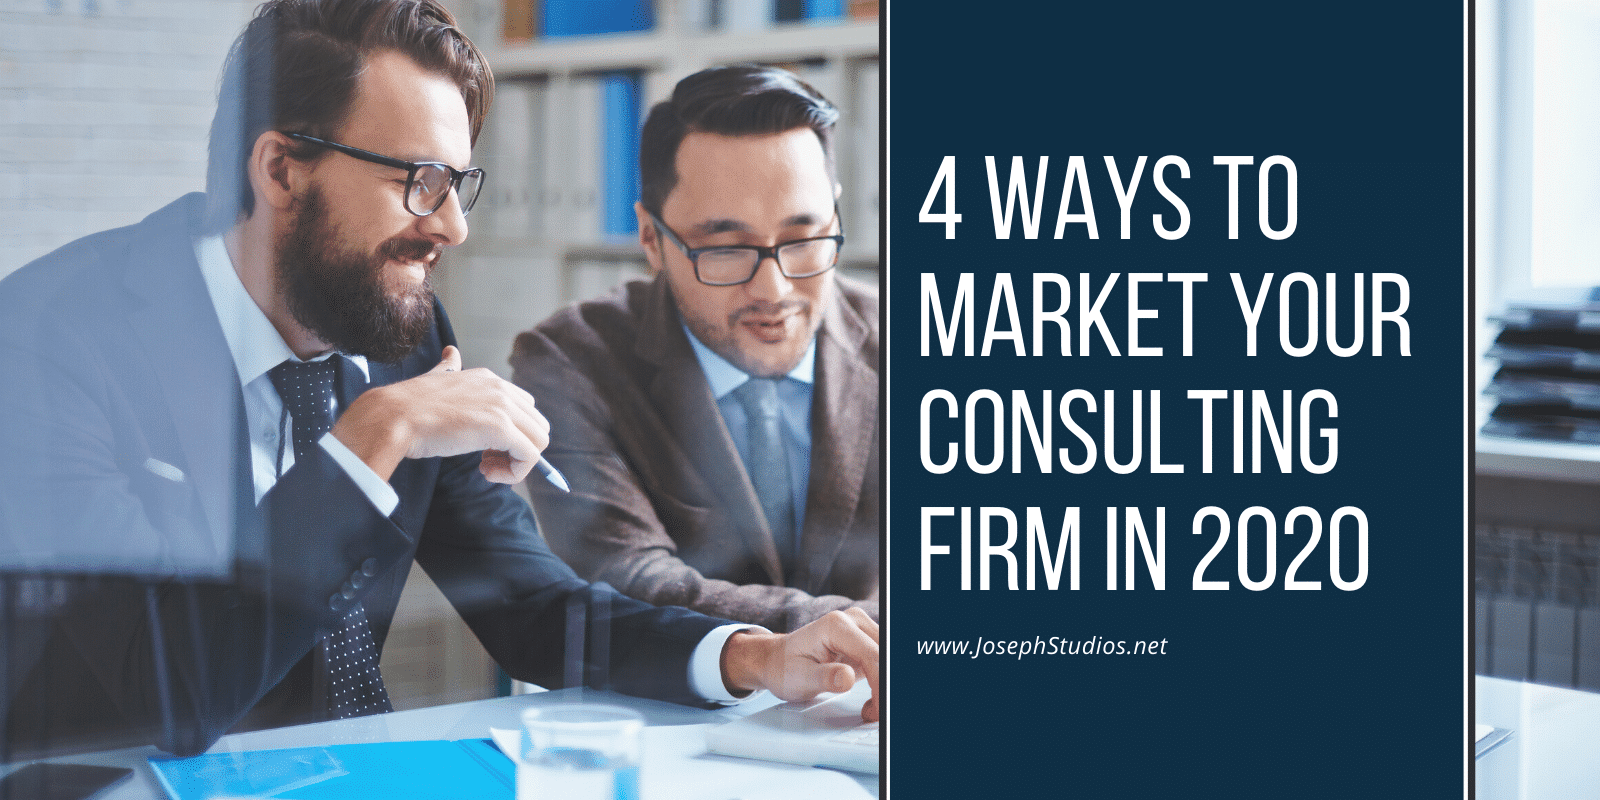 4 Ways To Market Your Consulting Firm In 2020